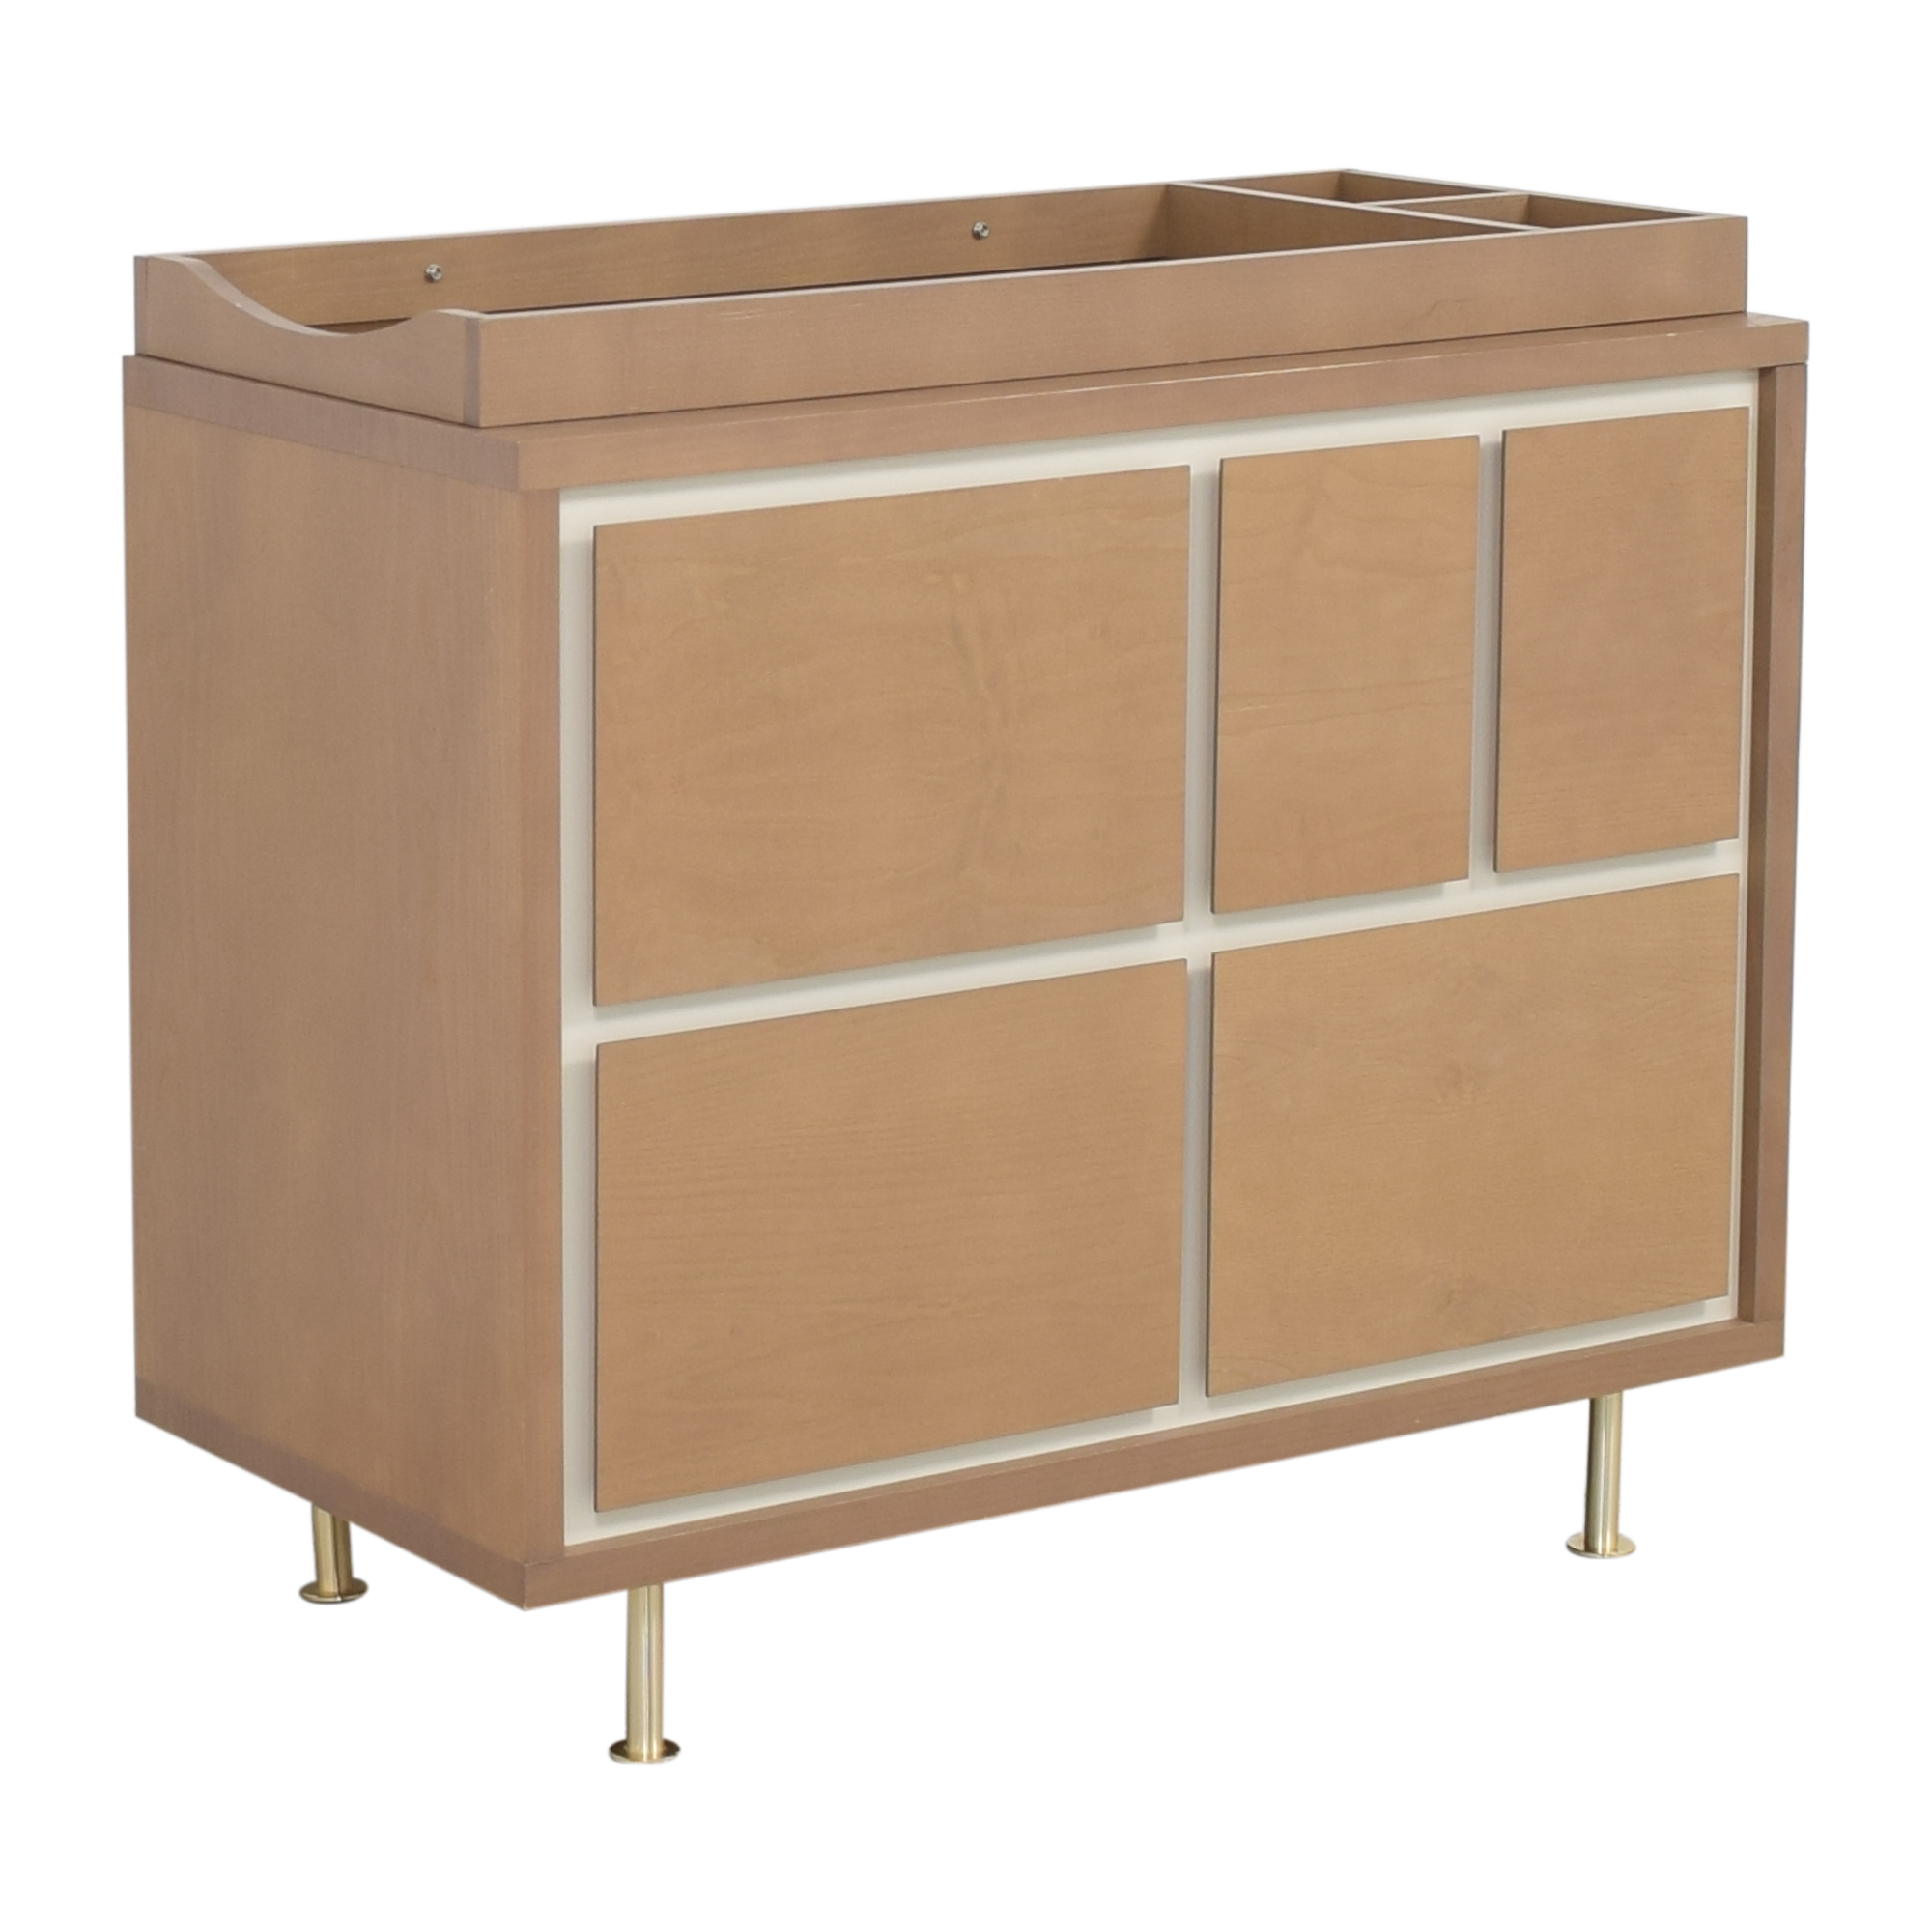 Nursery Works Nursery Works Novella Five Drawer Dresser with Changing Table nyc